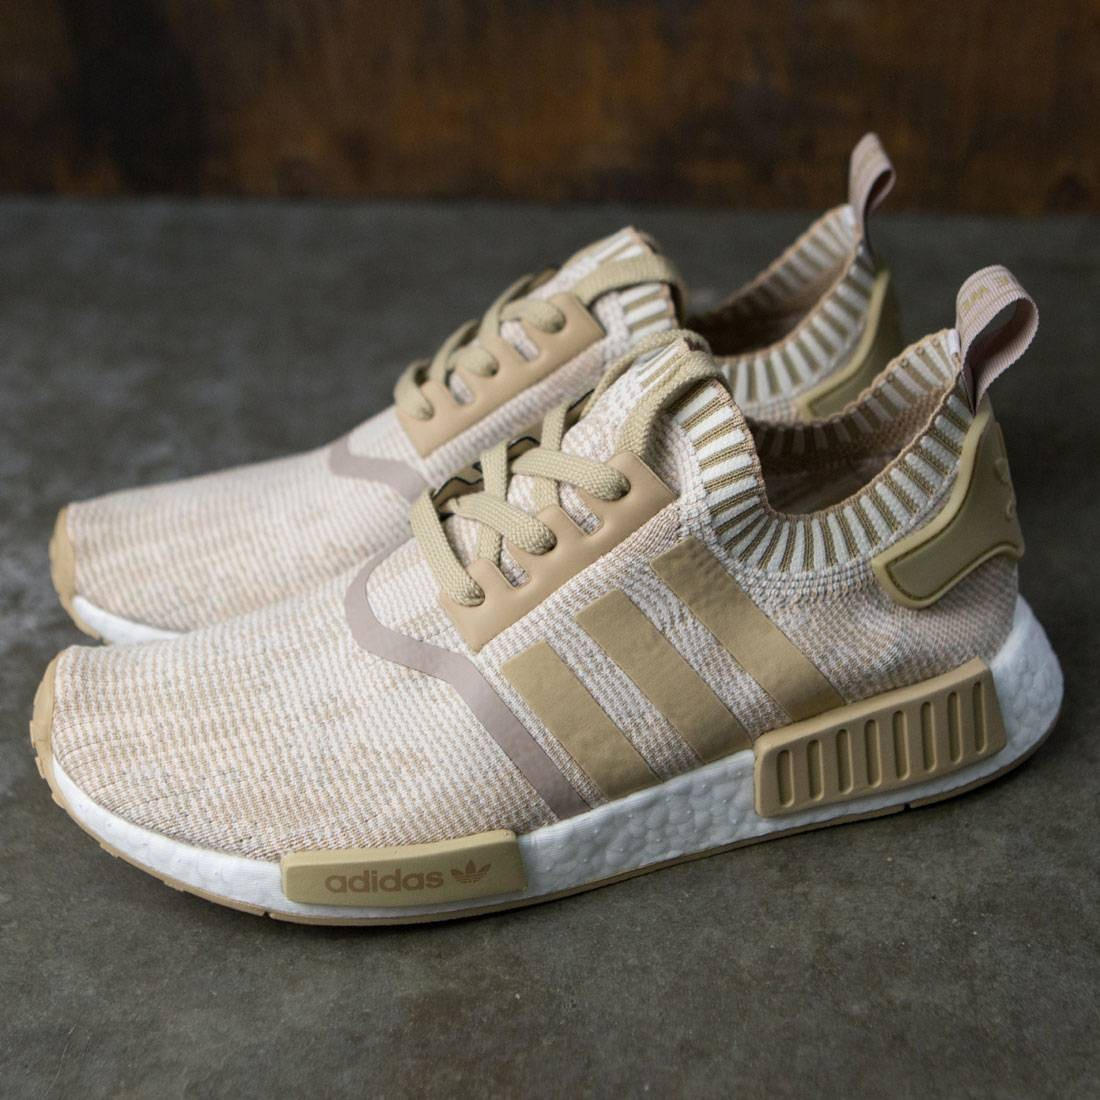 ba8873ccc adidas NMD R1 Sun Glow BY3034 April 2017